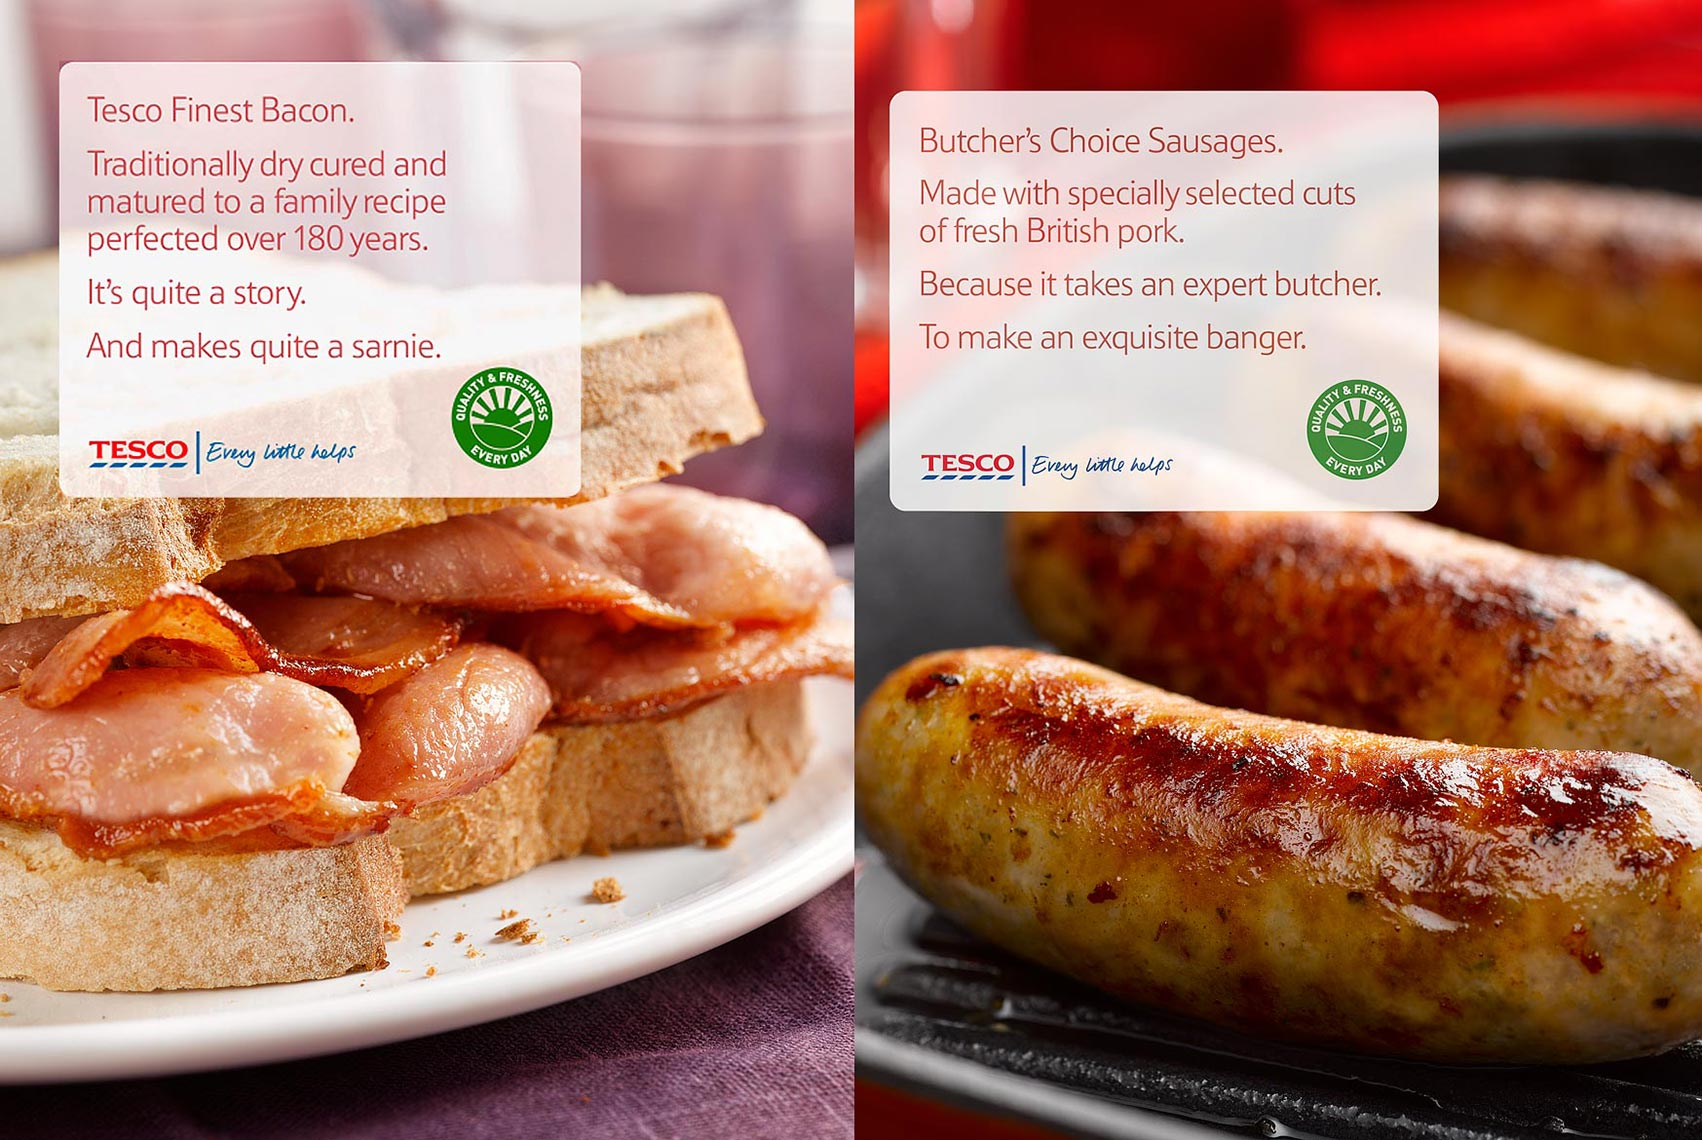 Tesco Bacon and Sausages | Colin Campbell-Food Photographer